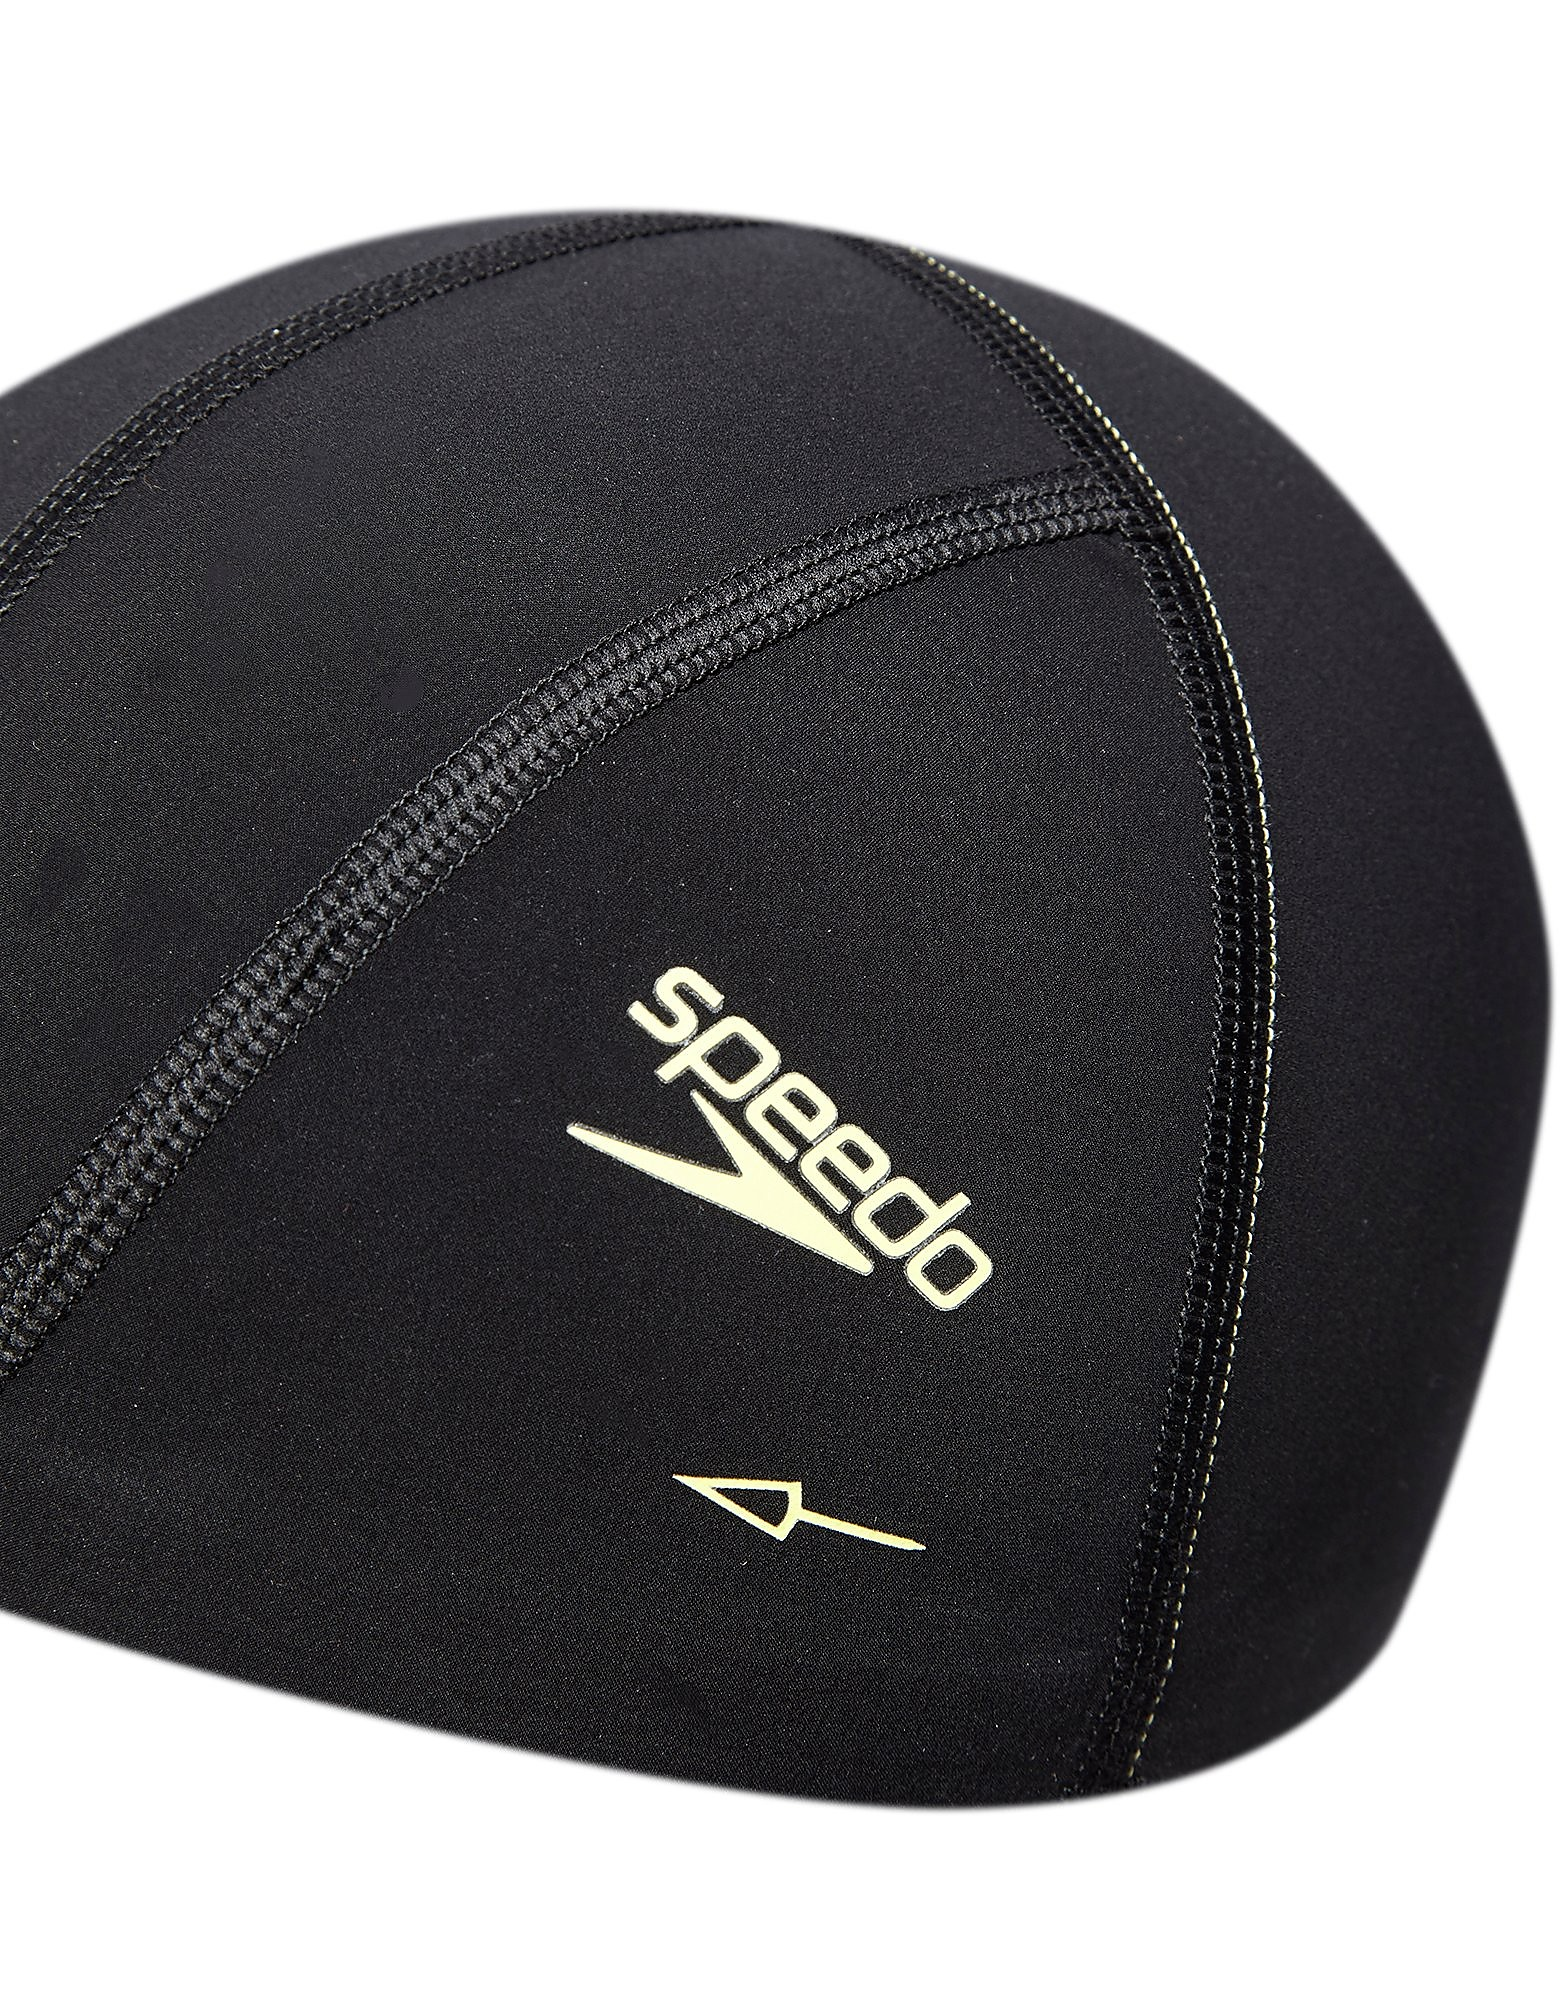 Speedo Fastskin3 Hair Management System Cuffia